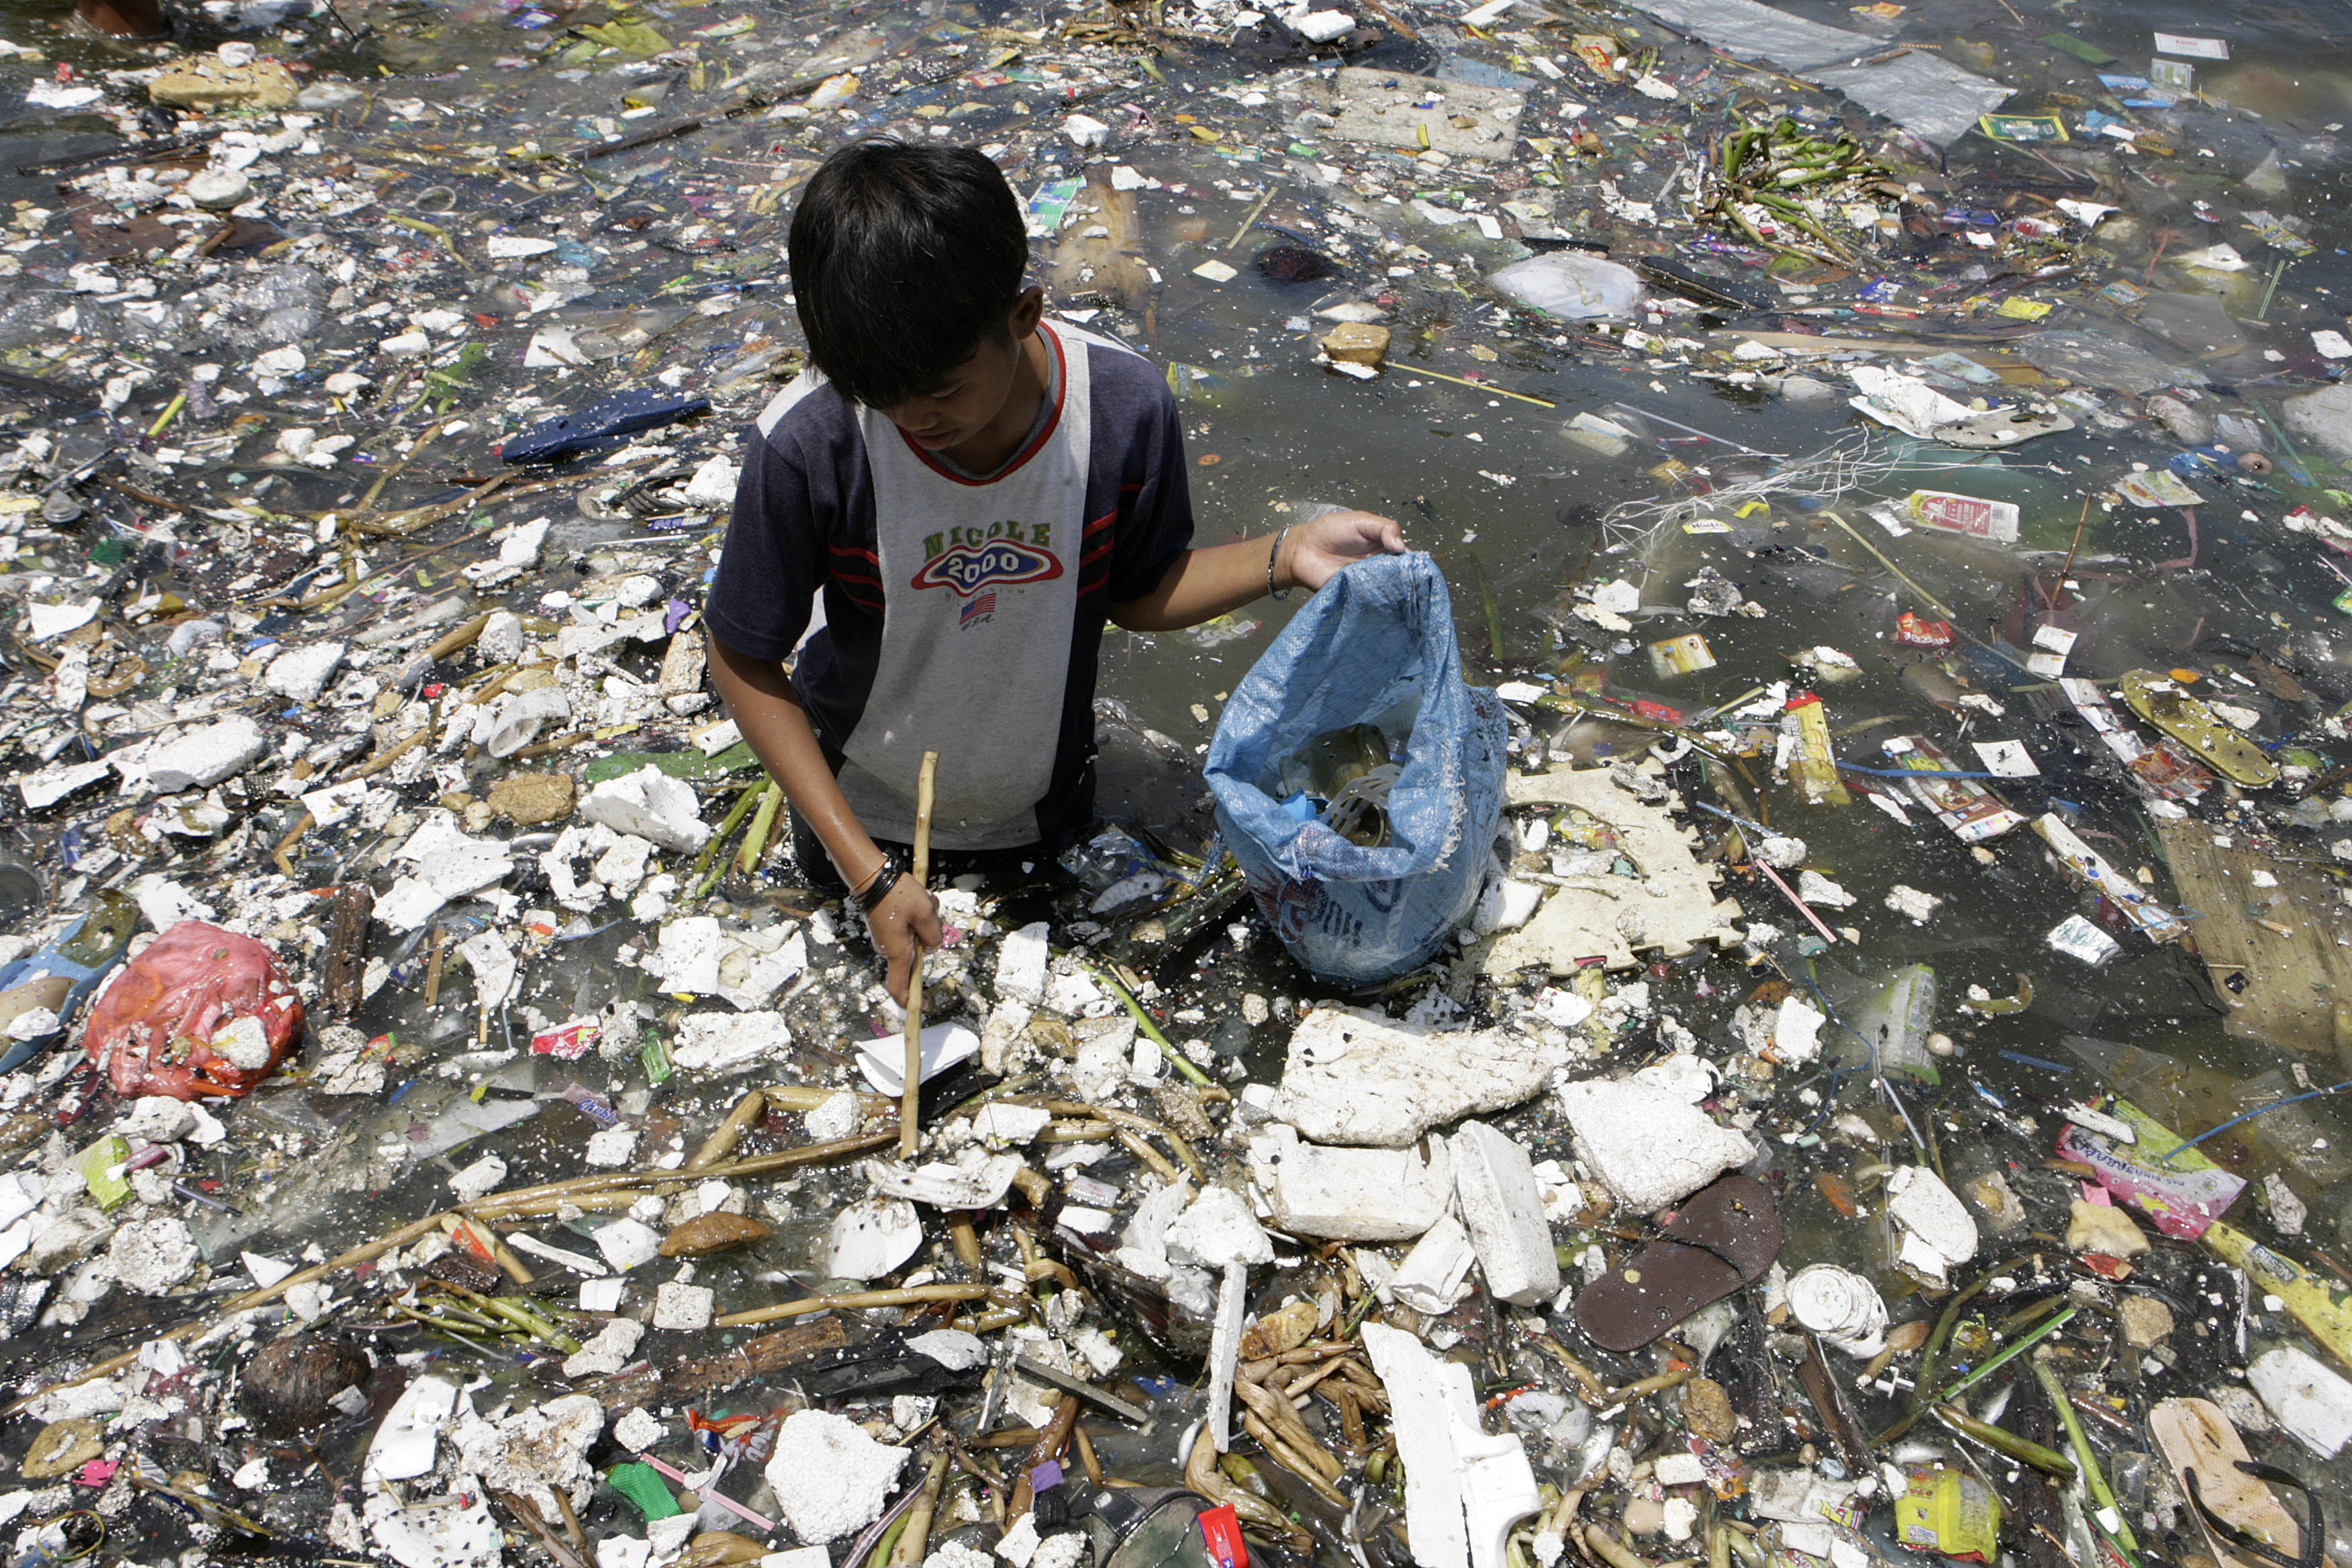 A boy collects plastic materials near a polluted coastline to sell in Manila